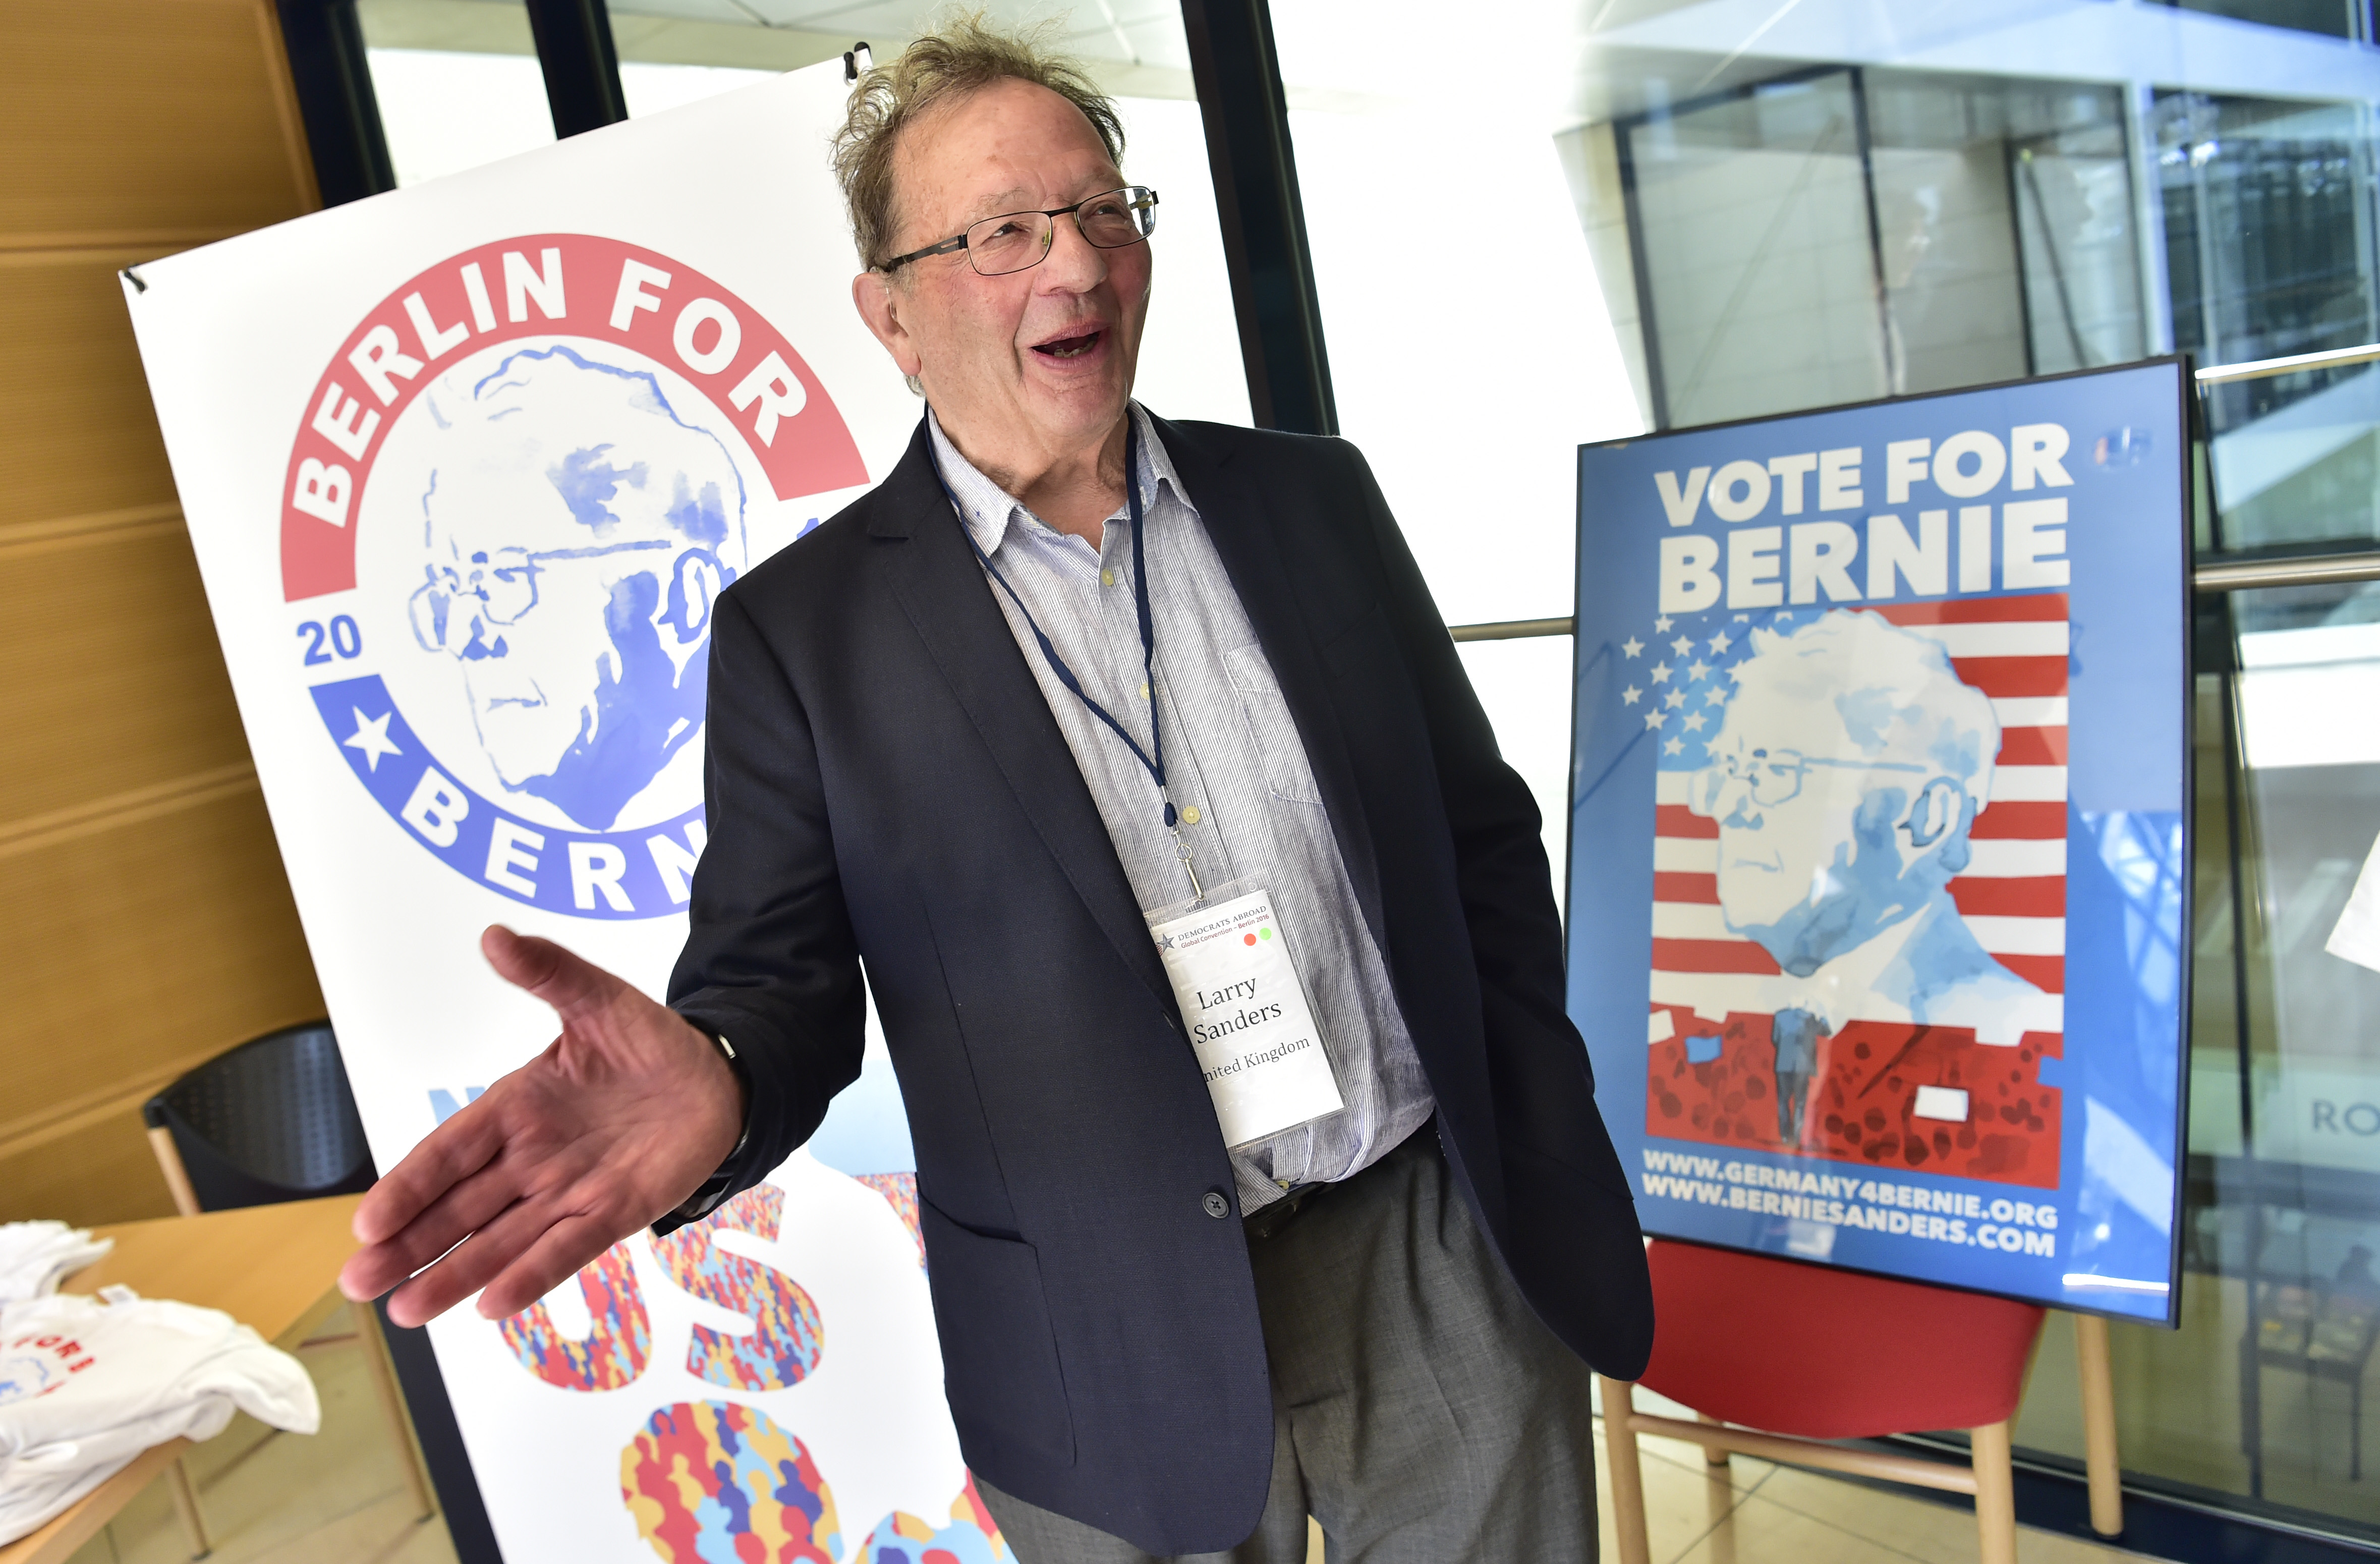 File photo of Larry Sanders, the older brother of Bernie Sanders, speaking to reporters during the Democrats Abroad global convention in Berlin on May 12, 2016